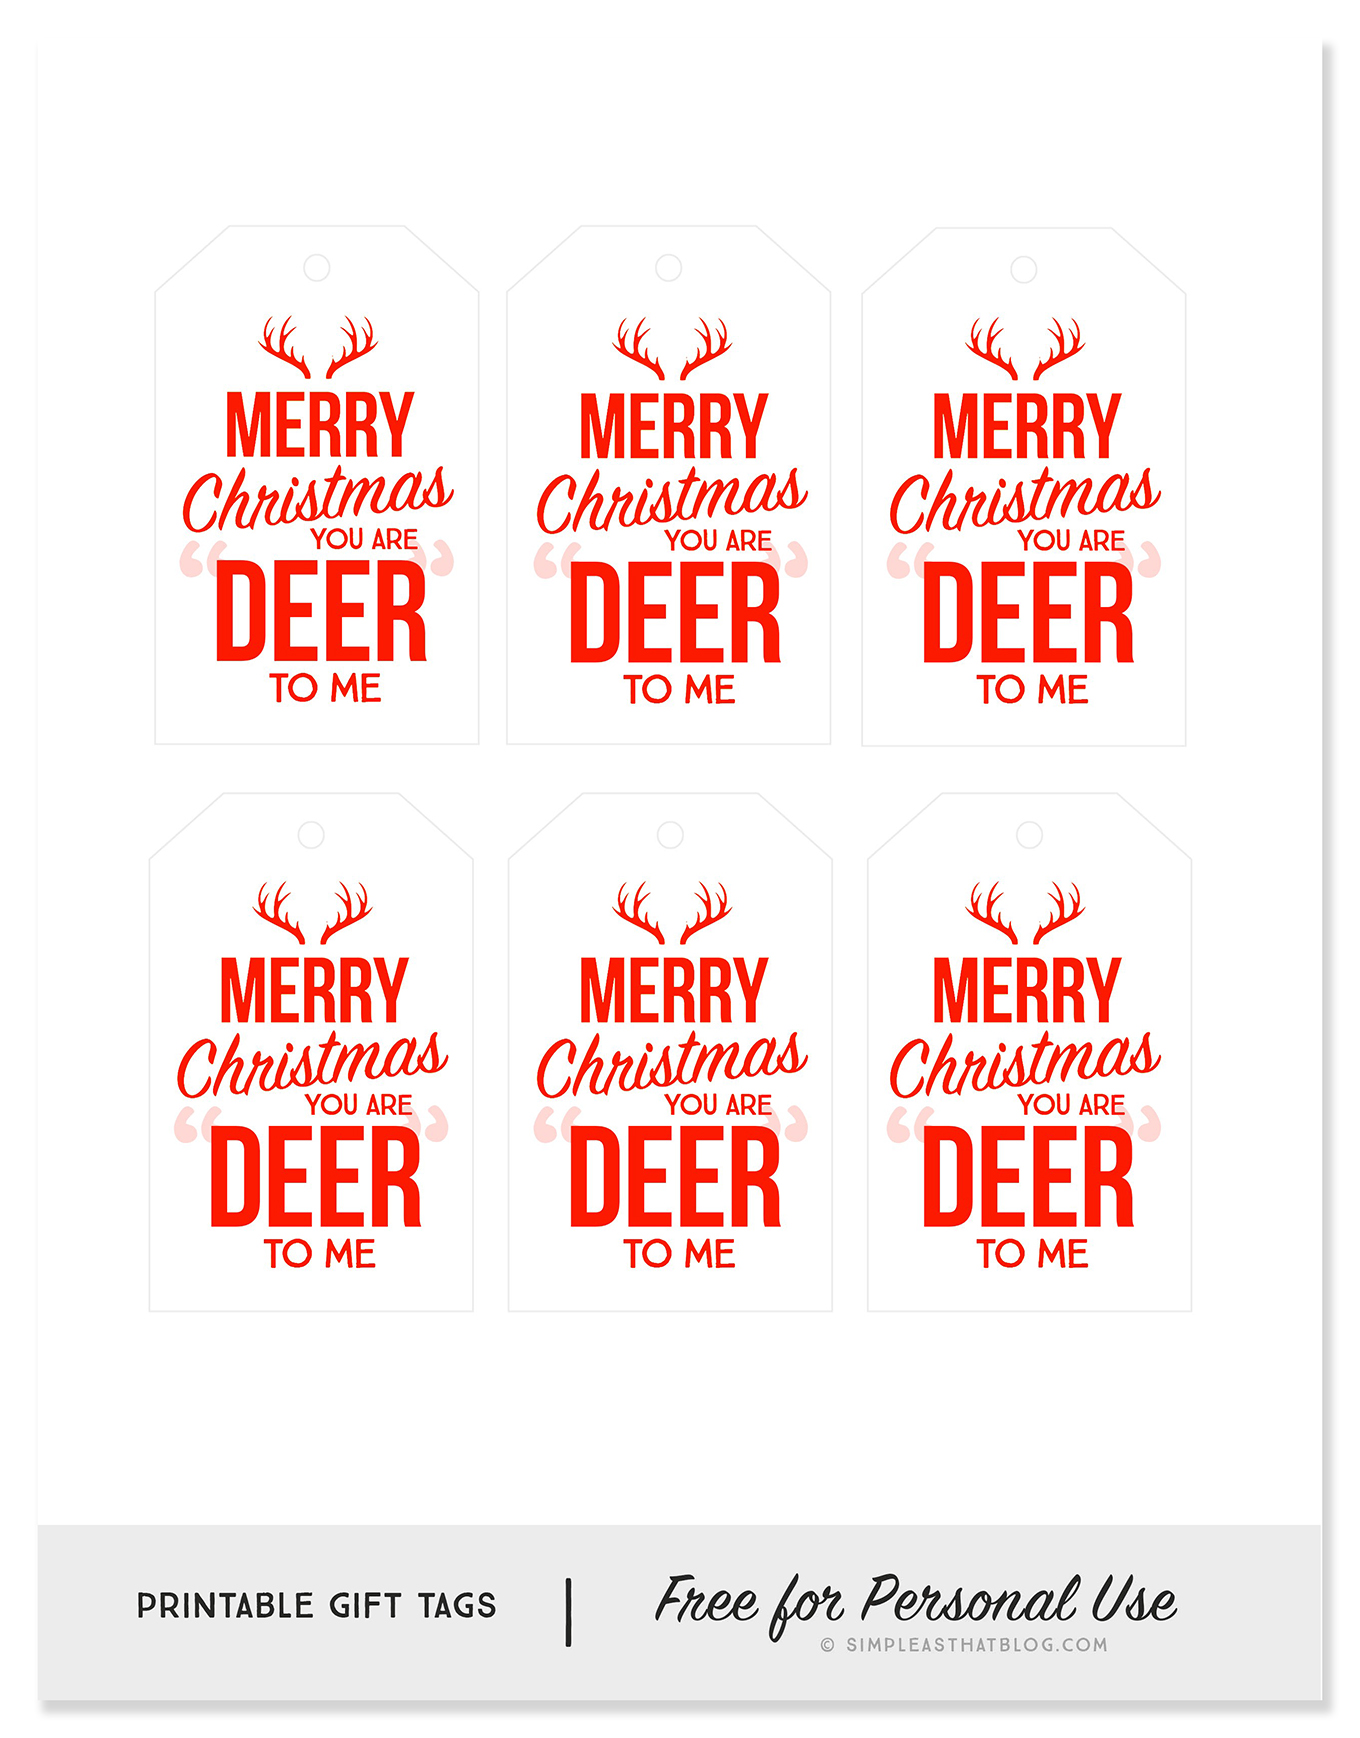 image about Printable Deer Pictures identify Oneself are DEER towards me Printable Present Tags - Basic as That